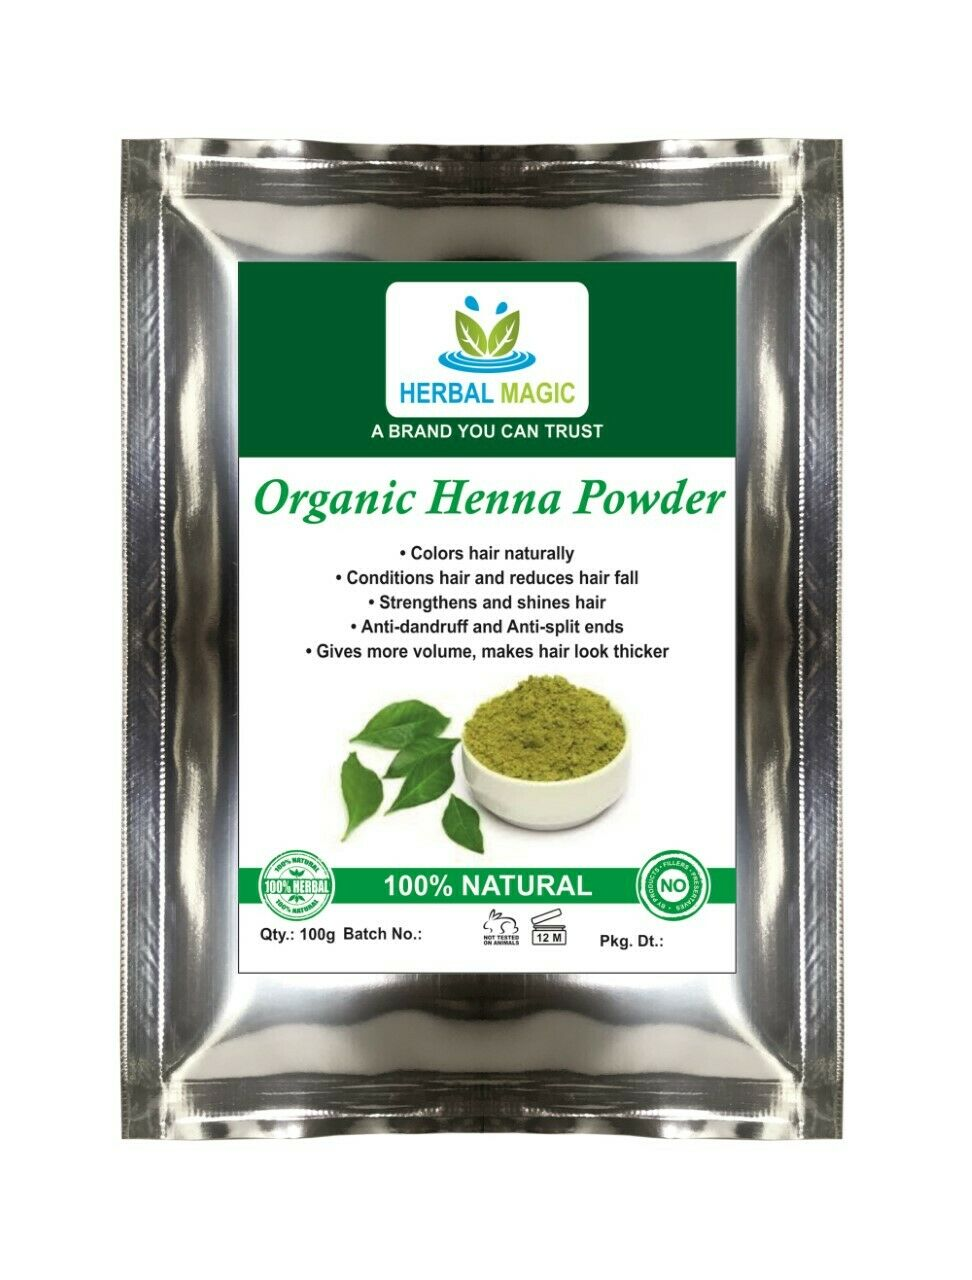 100g ORGANIC Henna Powder Triple-Sifted - Natural Hair Color/ Dye Henna Powder